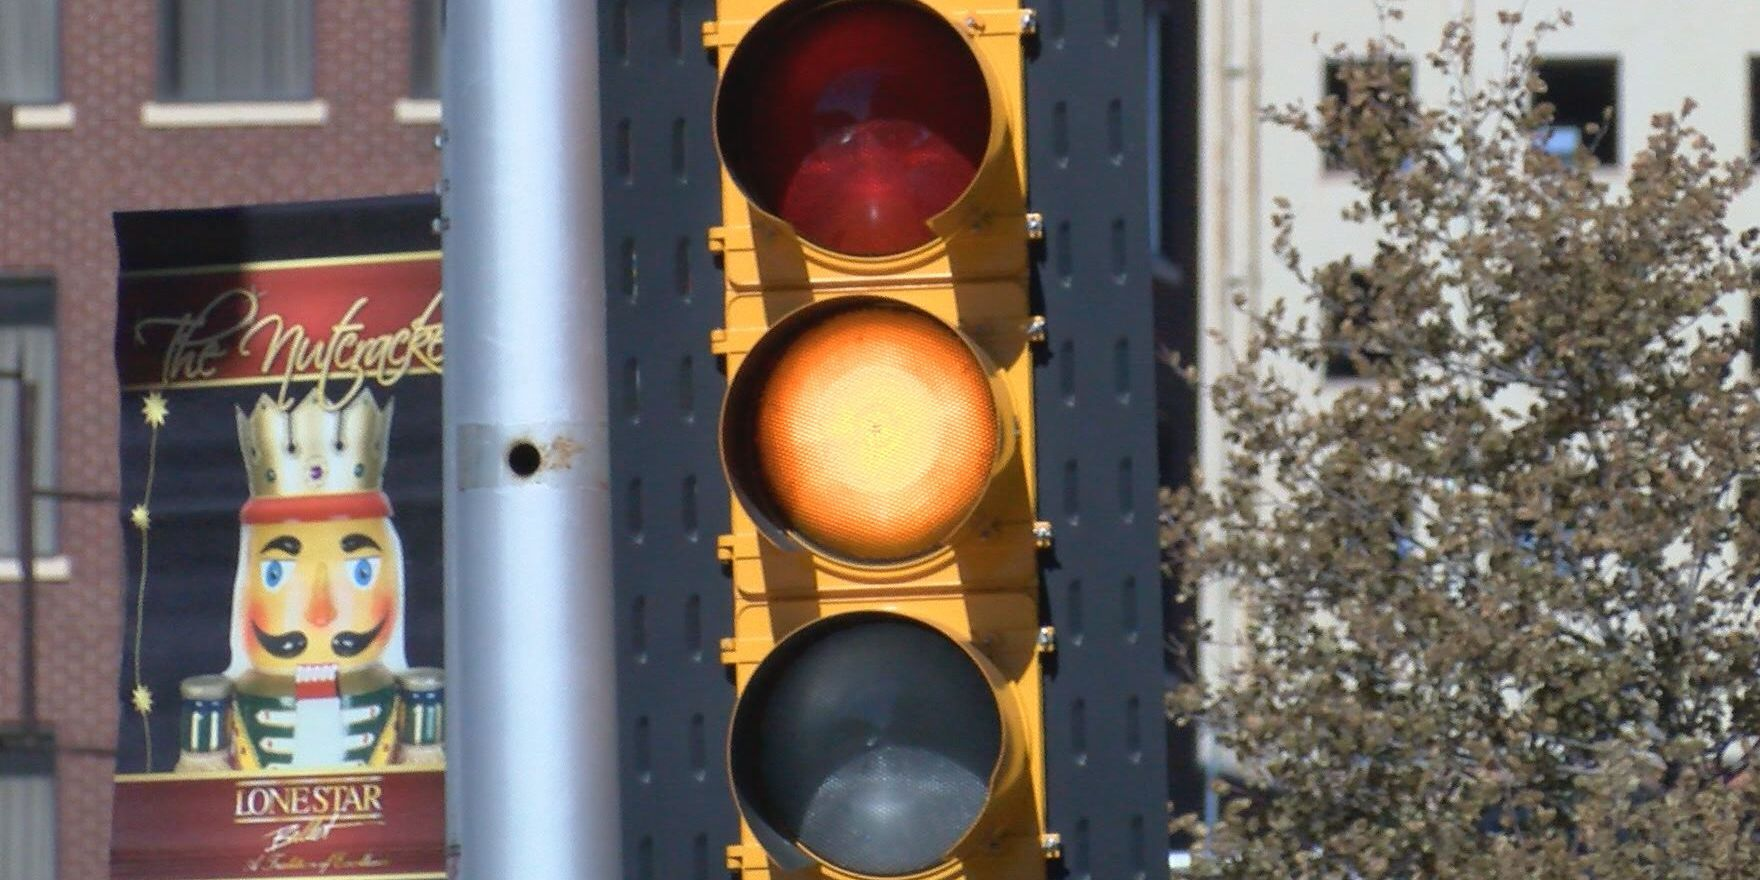 City of Amarillo to improve flow of traffic throughout city